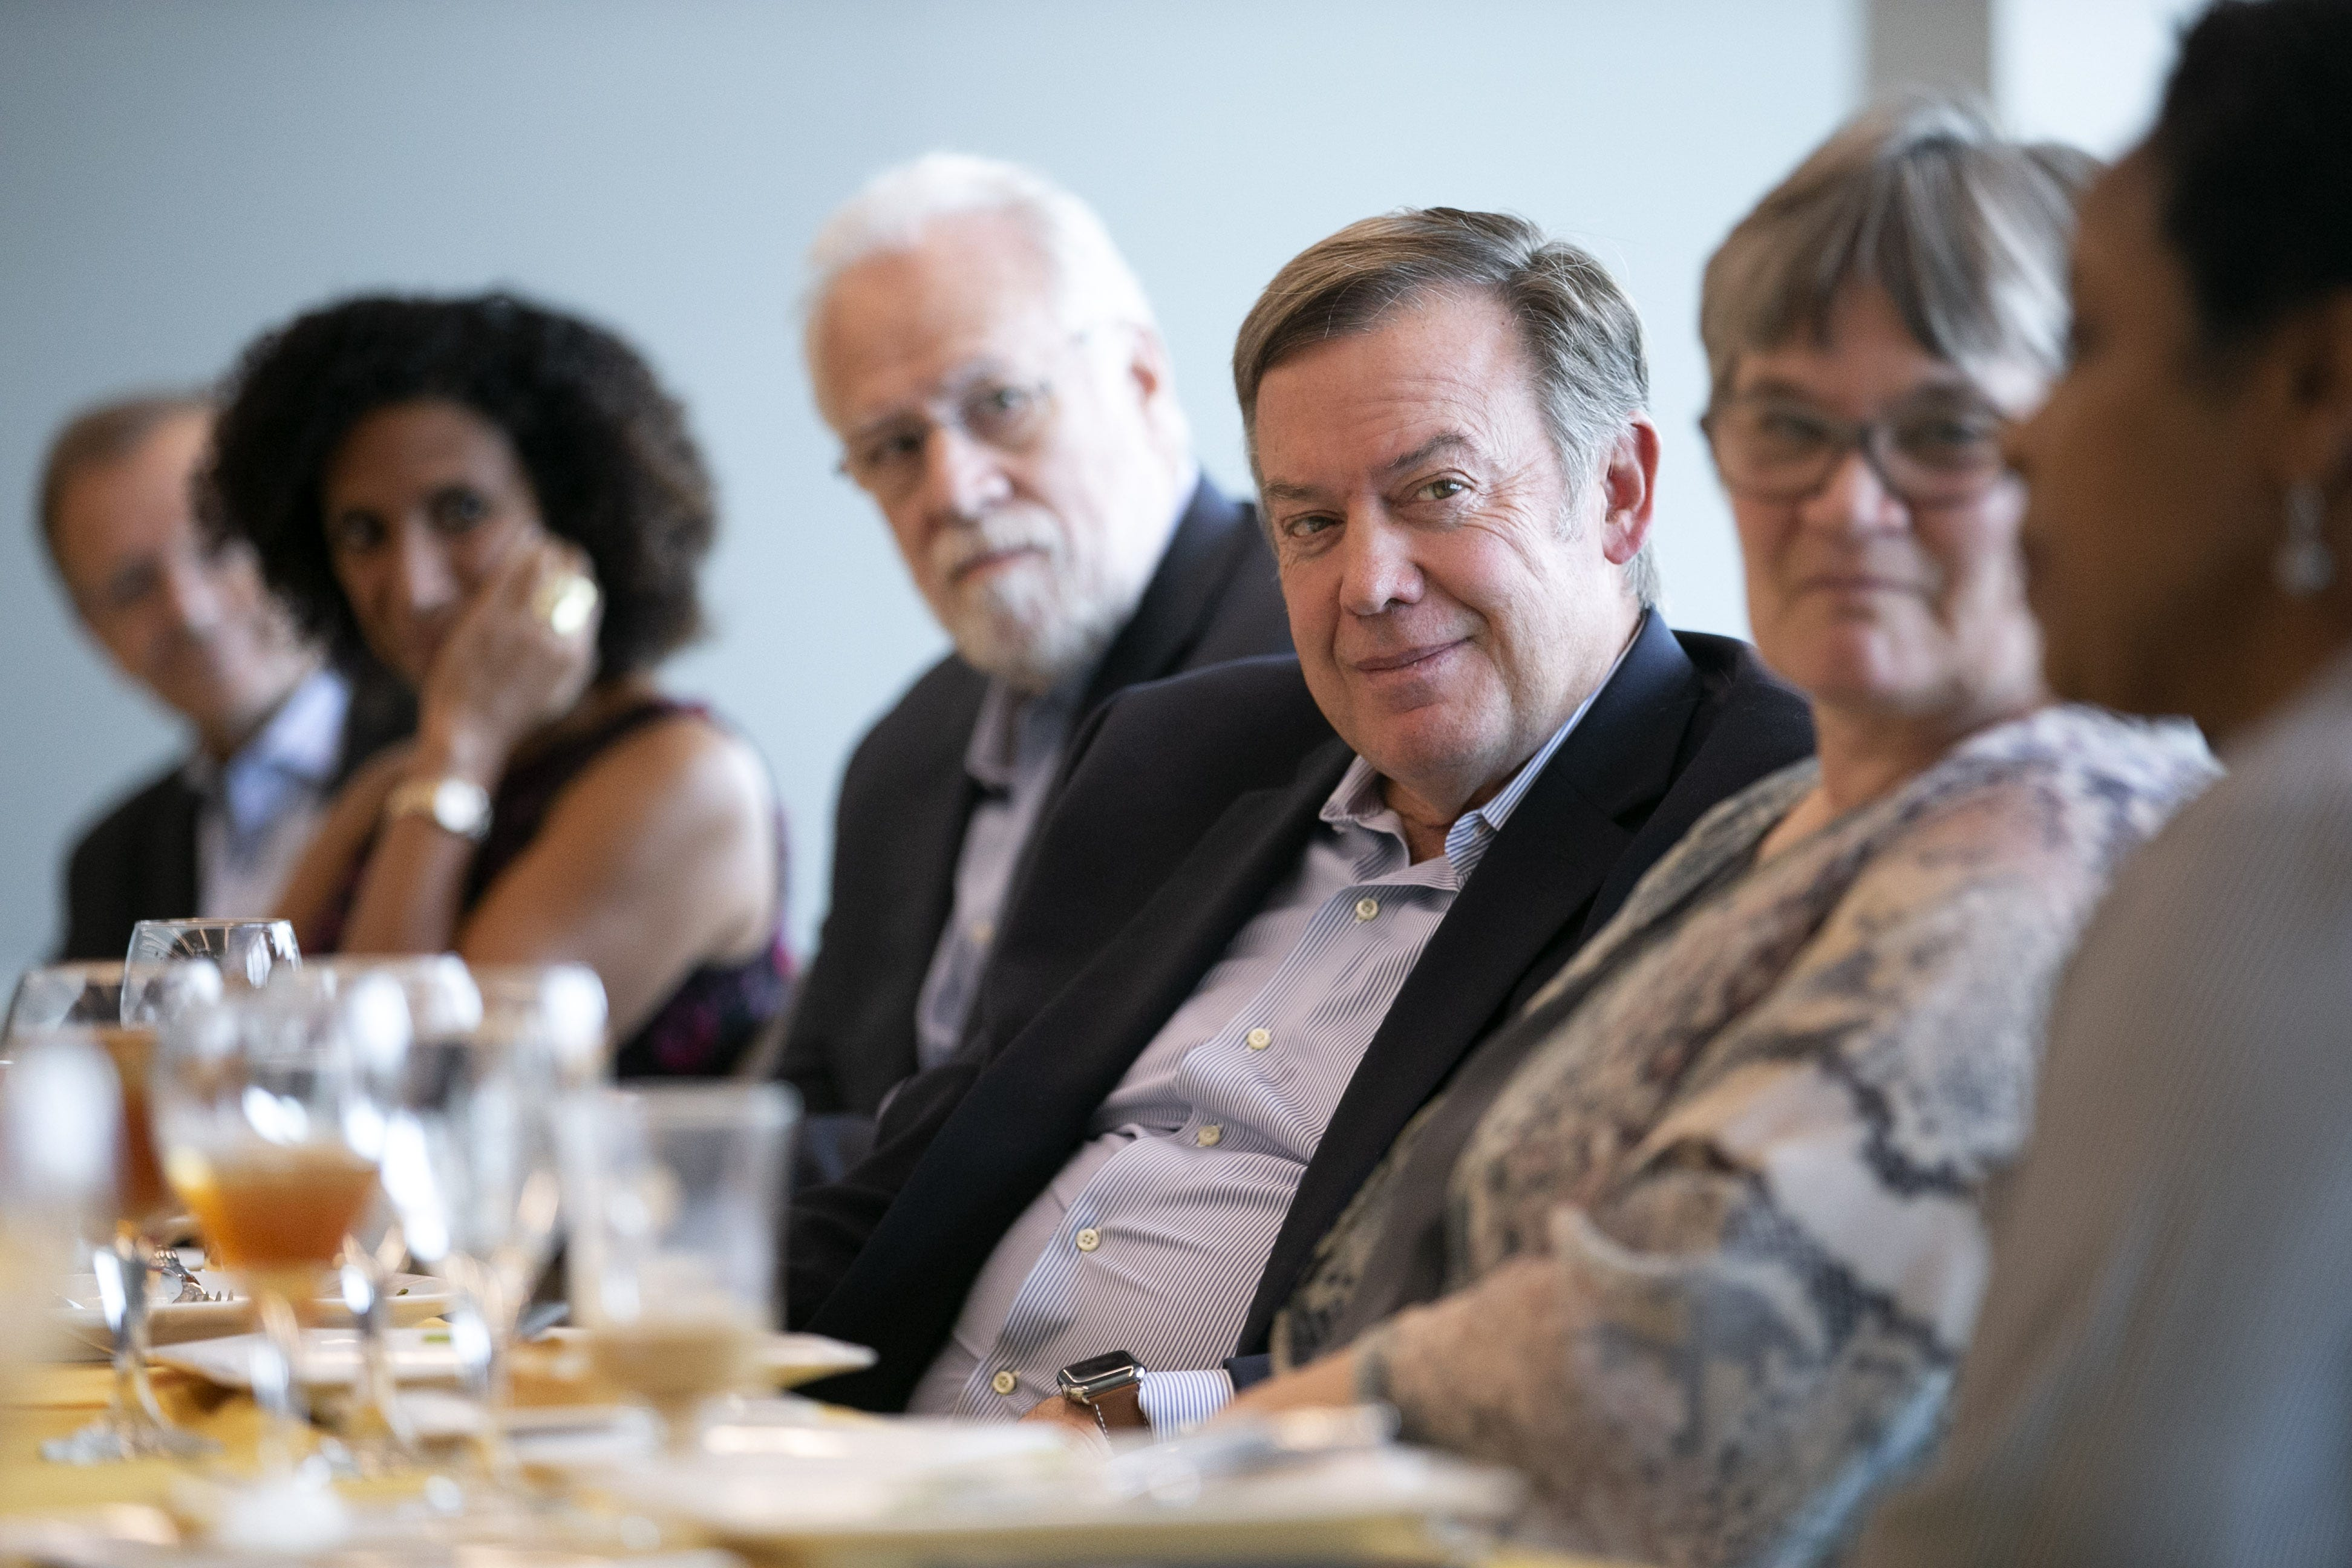 ASU President Michael Crow (center) listens during luncheon for new ASU faculty on the ASU Tempe campus on Oct. 16, 2018.